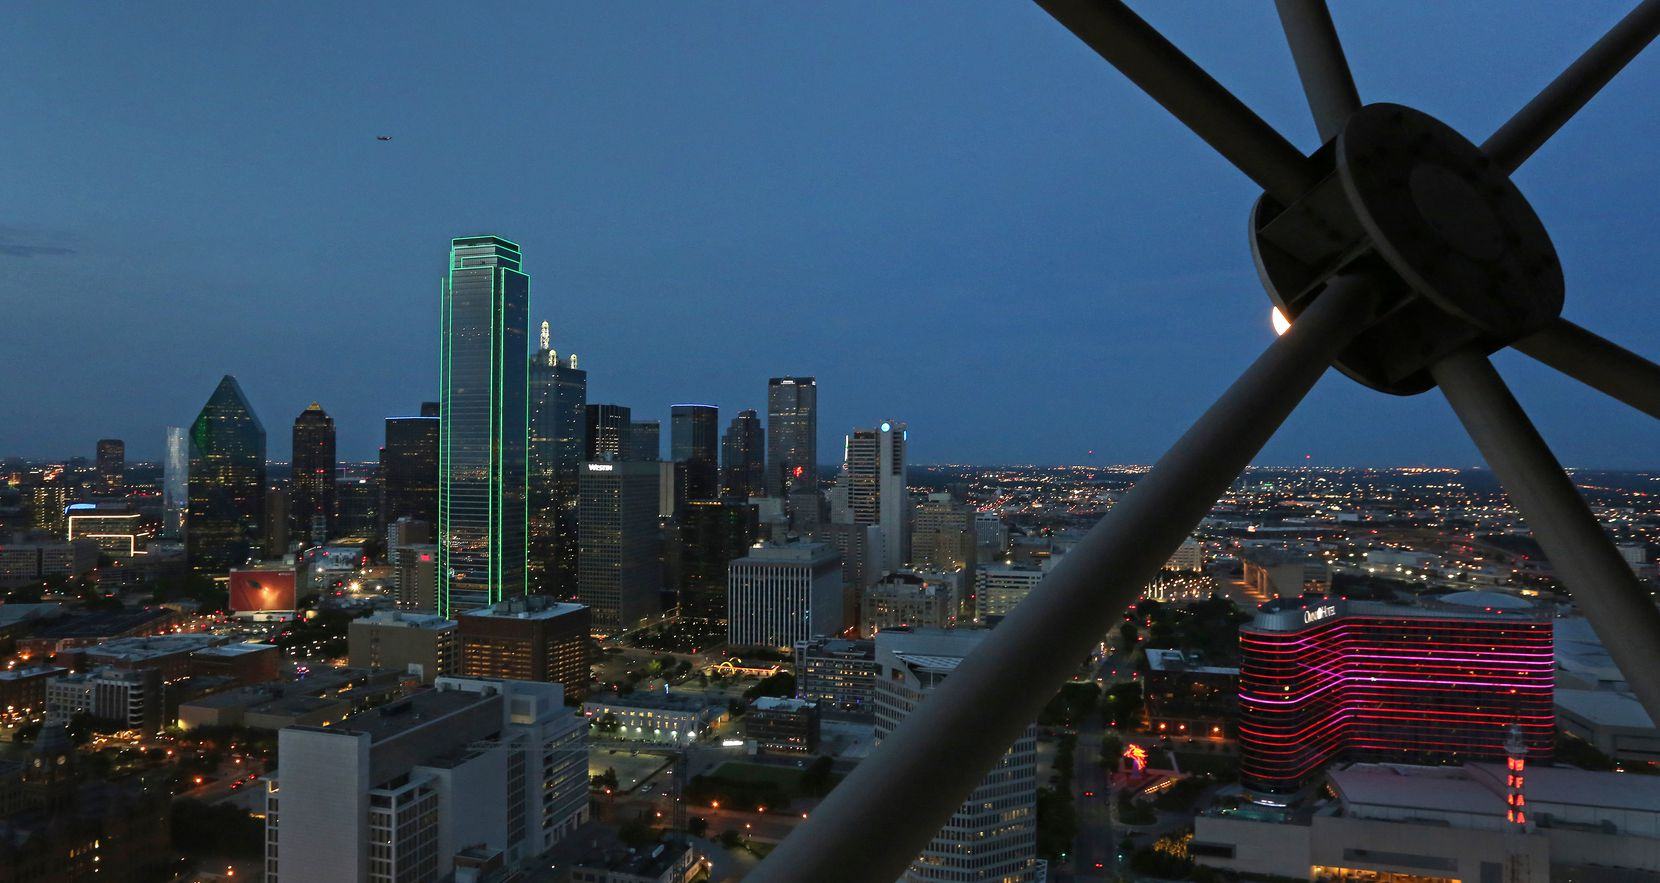 The best view of downtown Dallas is from the Geo Deck at Reunion Tower.